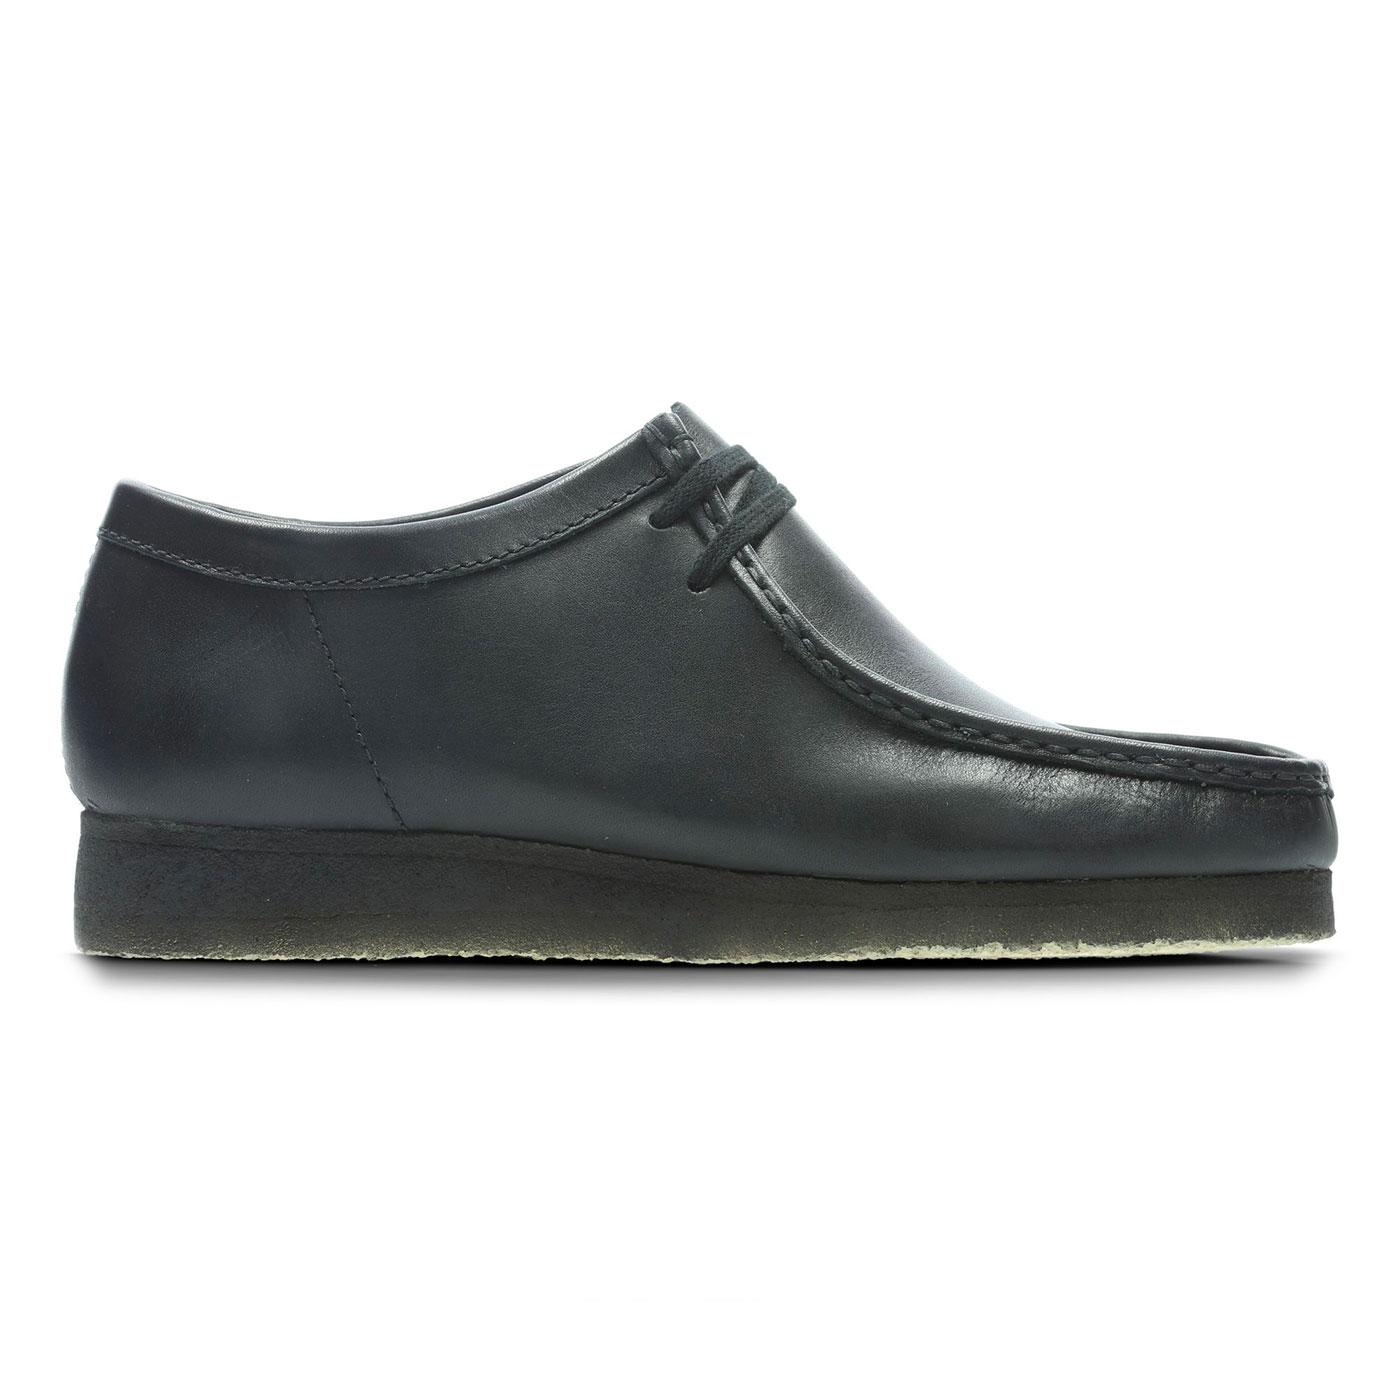 Wallabee CLARKS ORIGINALS Mod Black Leather Shoes